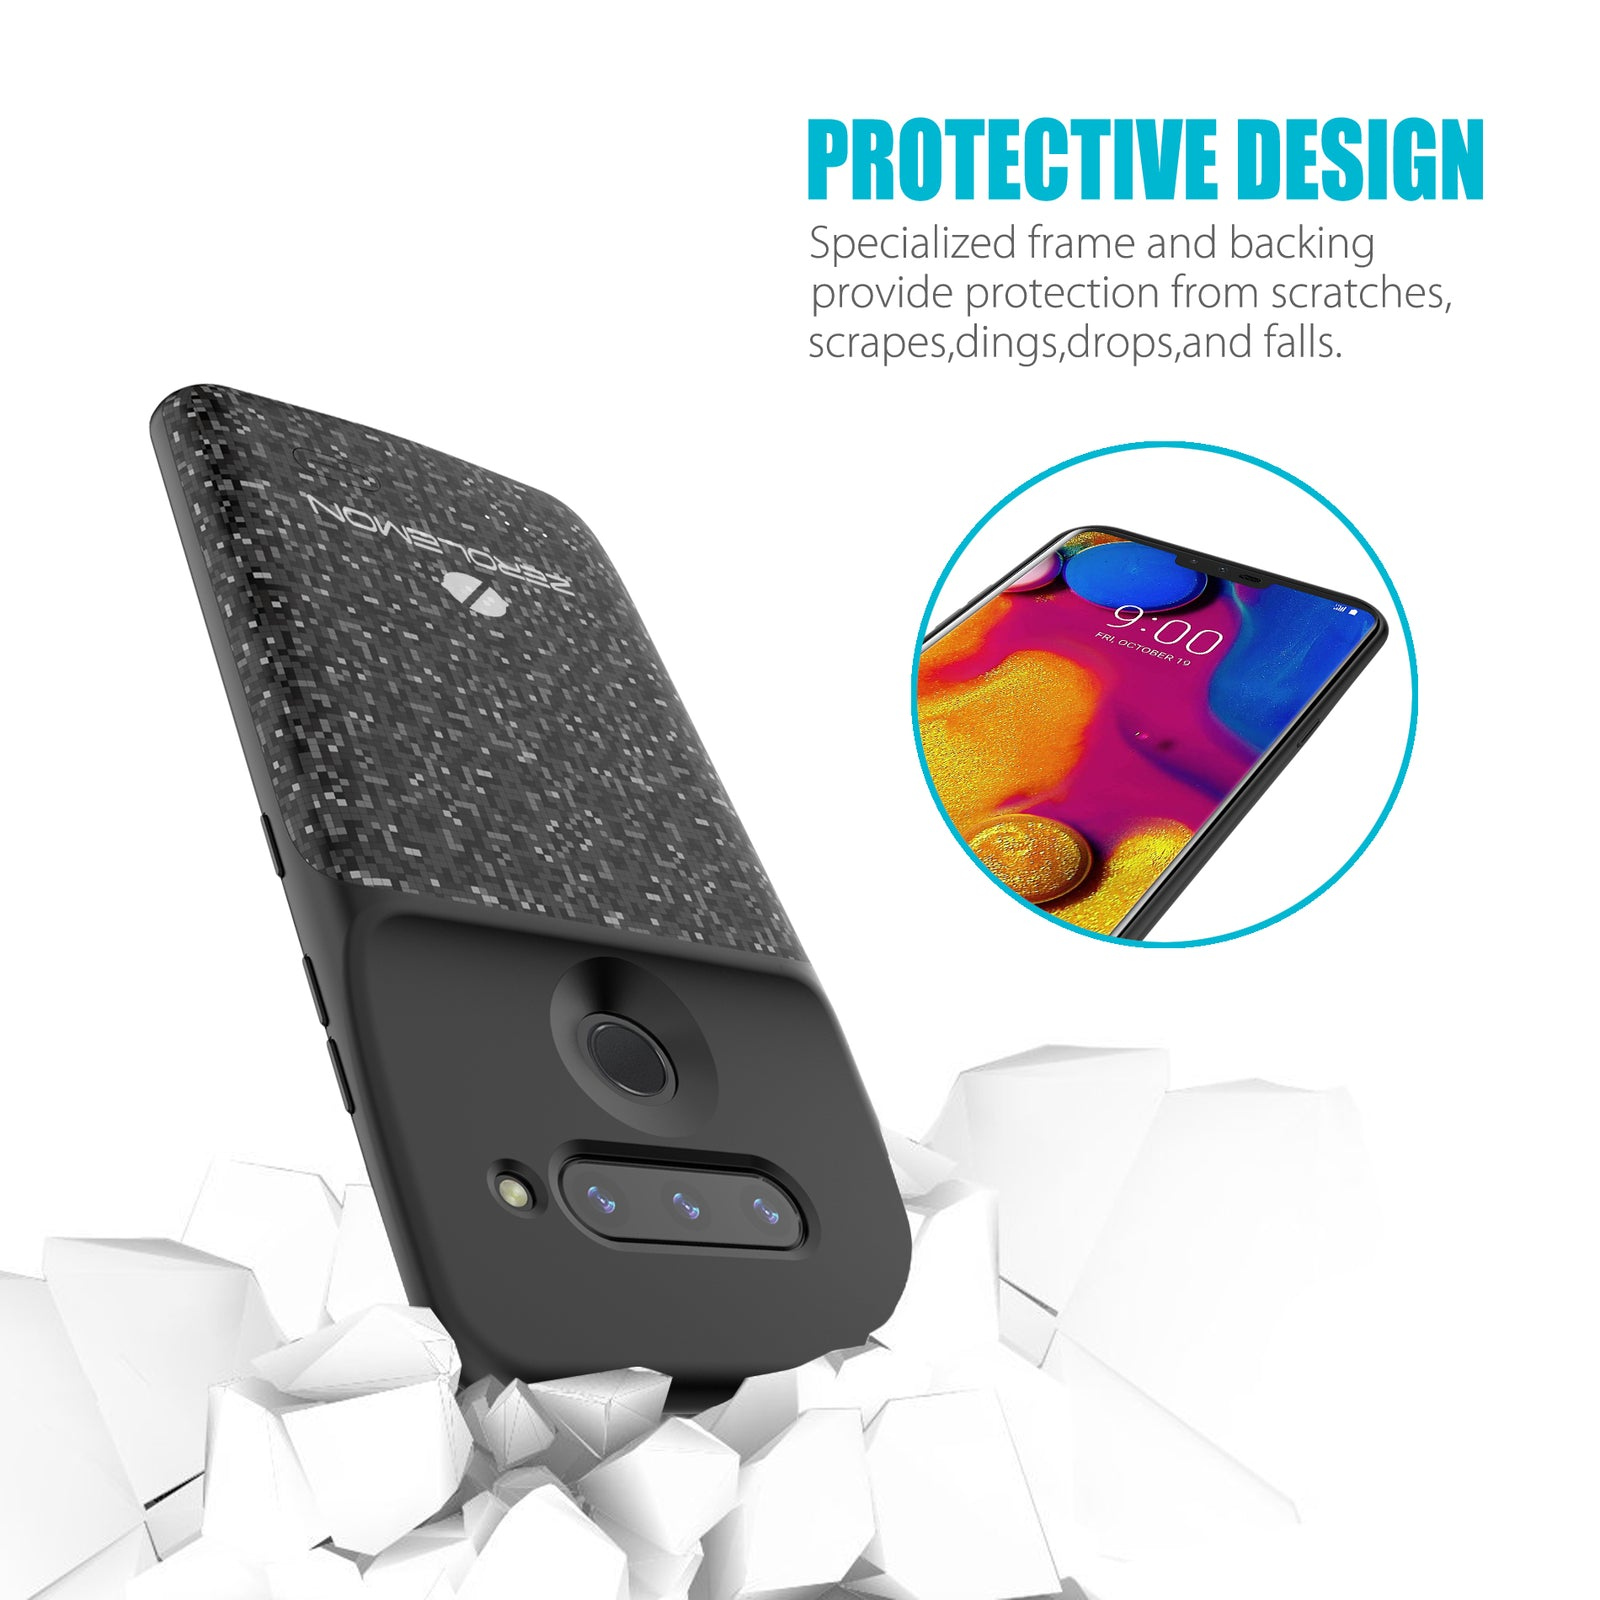 LG V40 ThinQ 5200mAh Battery Case [Shipping to US Only]